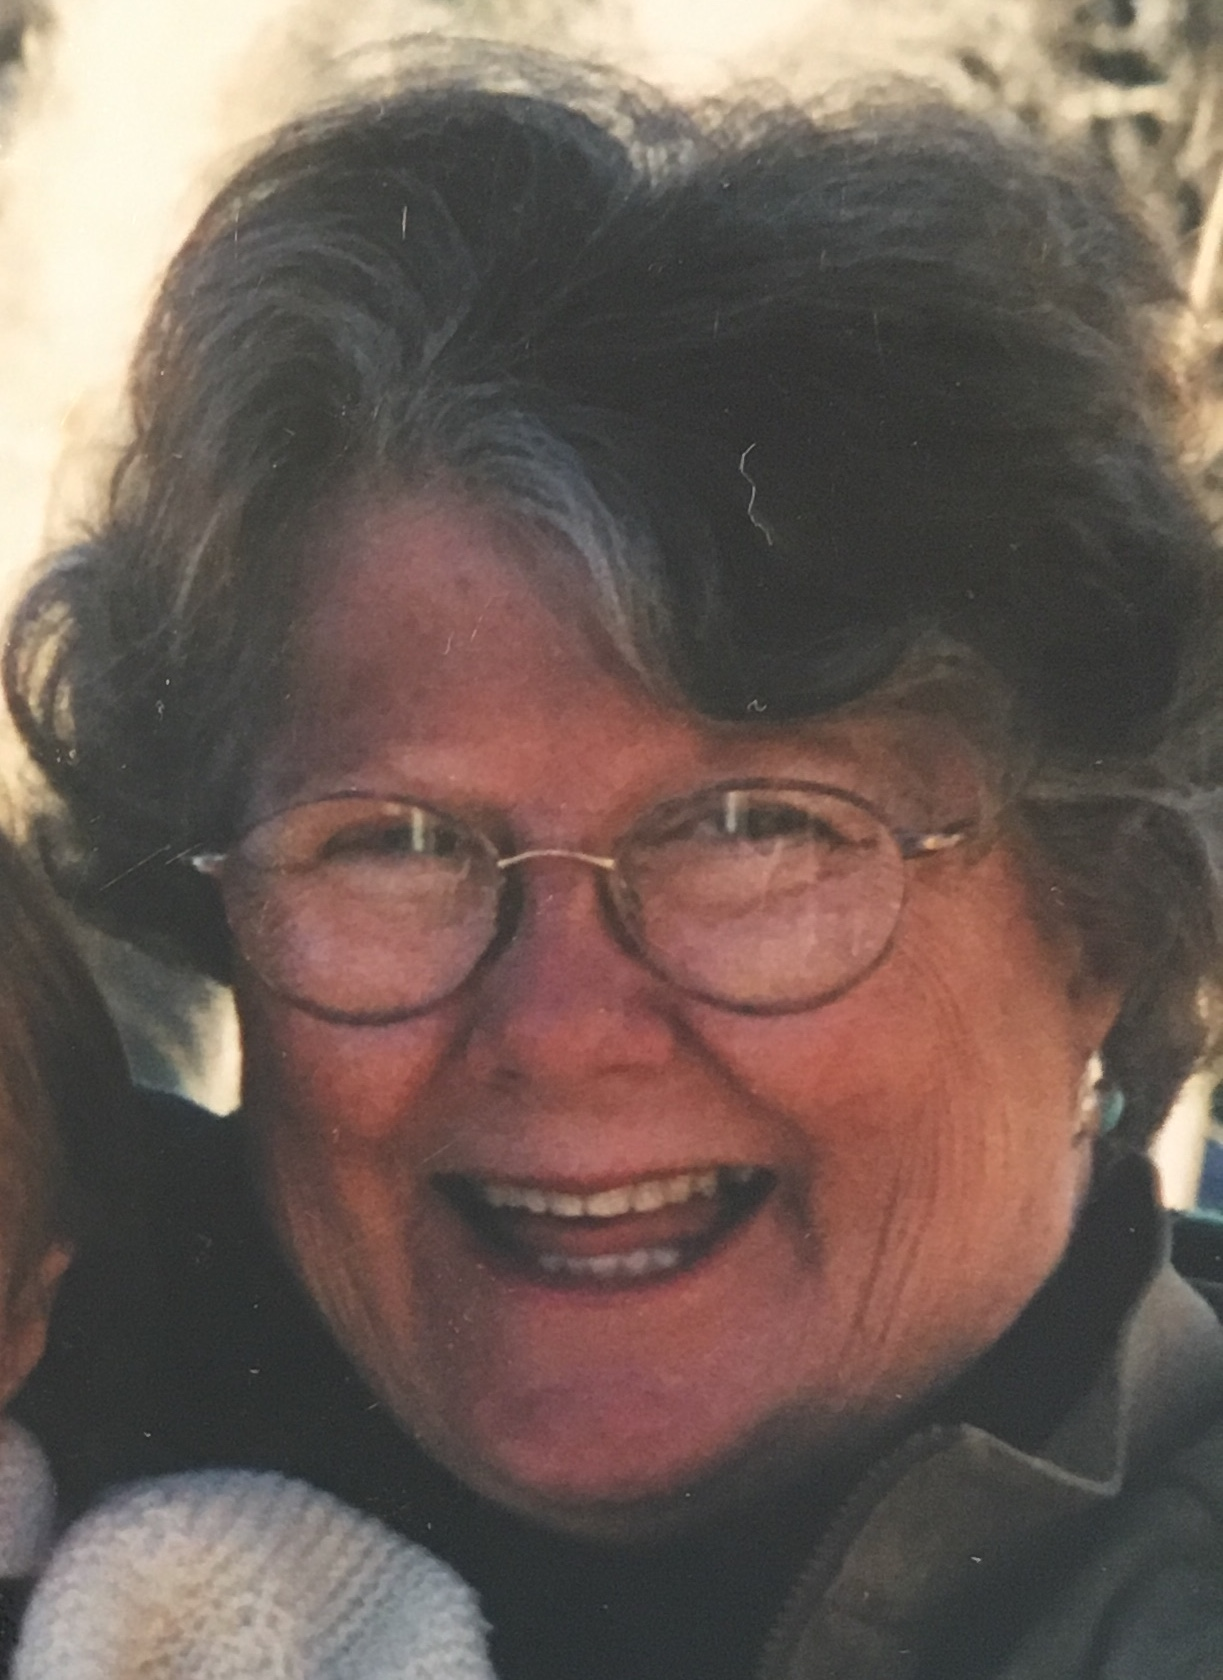 Judy Belle Jewell Saurman Kelly - Judy Belle Jewell Saurman Kelly passed away on February 11, 2019 with her husband Bill Kelly, son David Saurman, and daughter Ann Simon at her side. She was telling stories and entertaining those around her like she loved to do.Her early days in Detroit, Michigan shaped her love of radio, news, and broadcast television. After moving to Evanston, IL and attending Northwestern University, Judy worked for NBC in downtown Chicago. There she met and married Ken Saurman where they developed a community of politically-involved Chicagoans, painters, and writers.In 1970 she and Ken moved their young family to Vermont and a new life began. Judy worked at the Shelburne Middle School for 25 years as the art teacher! She loved being a teacher, working from the Craft School and developing her own art. In 1978 she co-produced a book of marbled paper with her friend Judith Pierce that sold at the Smithsonian. Ken Saurman died in 1980 and once again Judy had to pivot. Judy started Educational Travel Service with her dear friend Tim Kahn. She met Bill Kelly and in 1984 married him. For the next 35 years their lives were full of adventure and travel that took them from Central America to Southern Africa. The culmination of her years in Africa she documented in letters to her friends that became her book, Where the Tar Road Ends.Judy was an avid reader, attending book group once a month, and an artist. She was in a craft group that met regularly and a painting group, the Monet Mamas, that met faithfully every Wednesday for many years. Judy loved meeting new people, colorful people, but most especially her people--her beloved friends and family. If there weren't people in her sunroom every day, she'd go out and meet them. From city politics, to community arts, to immigrant families who just needed a friend, Judy was all in. Judy was a Justice of the Peace, served on the Tibetan Resettlement Board, was a long-time board member of Burlington City Arts, and engaged in many other civic and non-profit organizations.We will miss Judy's story- telling, her embellishments, and her loyalty. Please join us as we celebrate Judy's life on May 4th at 2pm at All Souls Interfaith Gathering, 291 Bostwick Farm Road, Shelburne, VT.